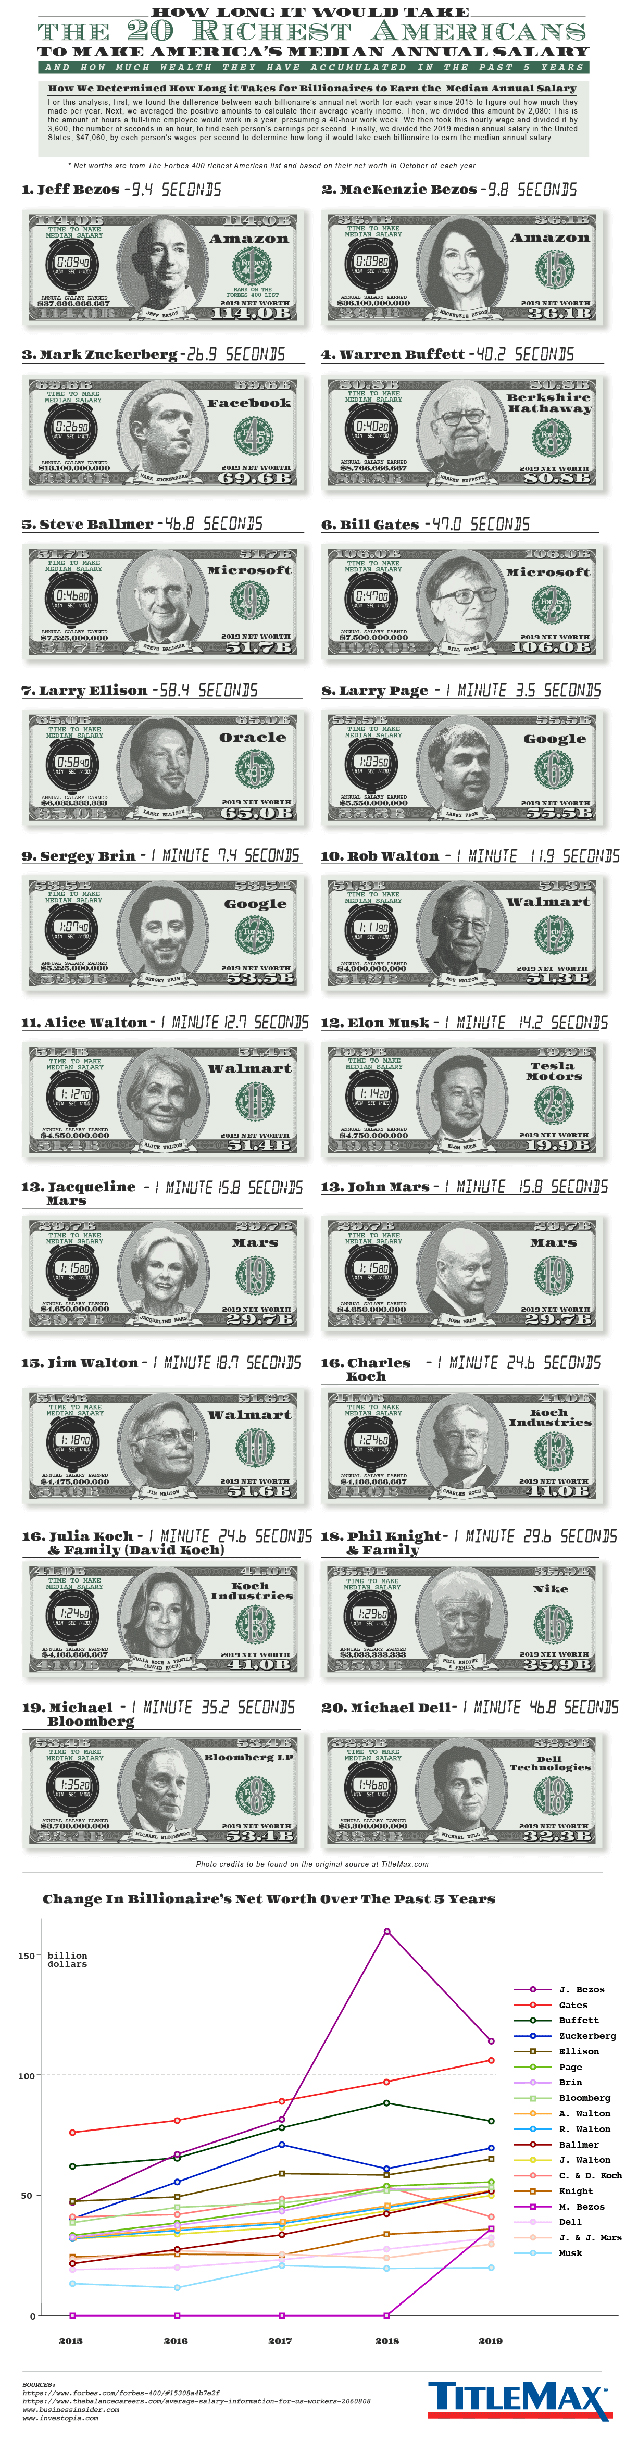 Infographic for How Long it Would Take the 30 Richest Americans to Make America's Median Annual Salary?